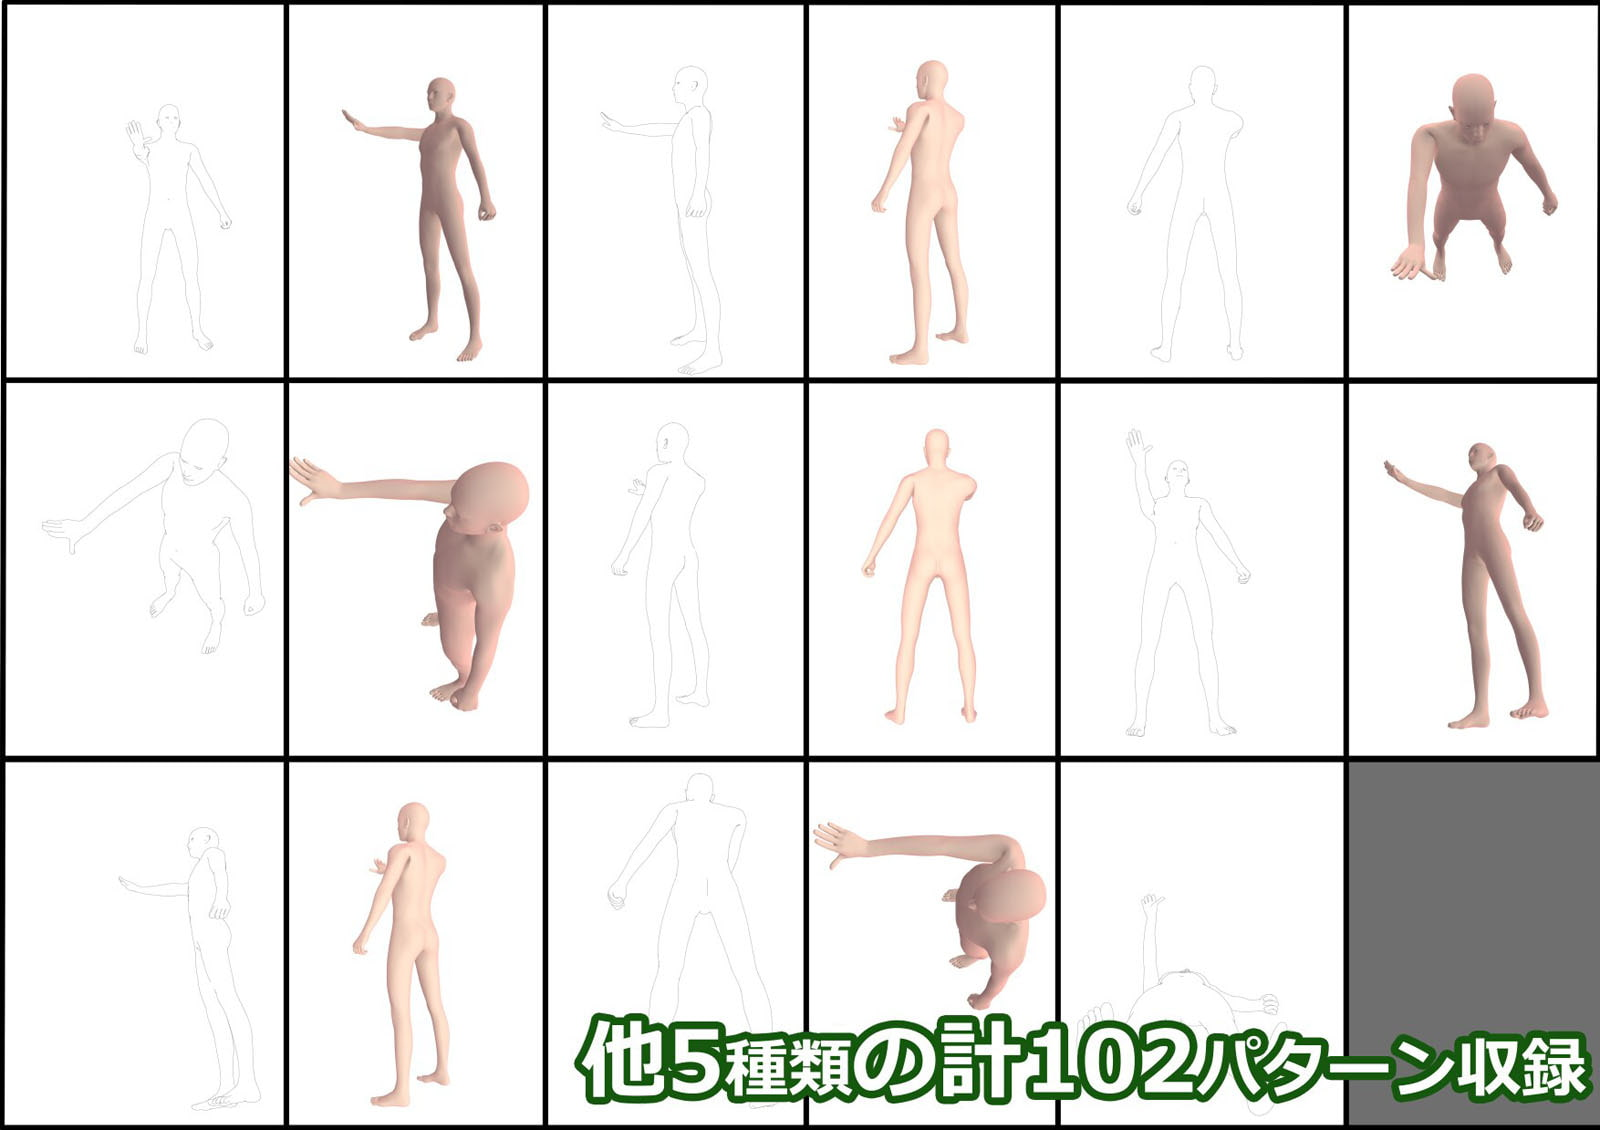 6 Poses - Mid Height Standing - 102 patterns of the male form [sozaishouten]